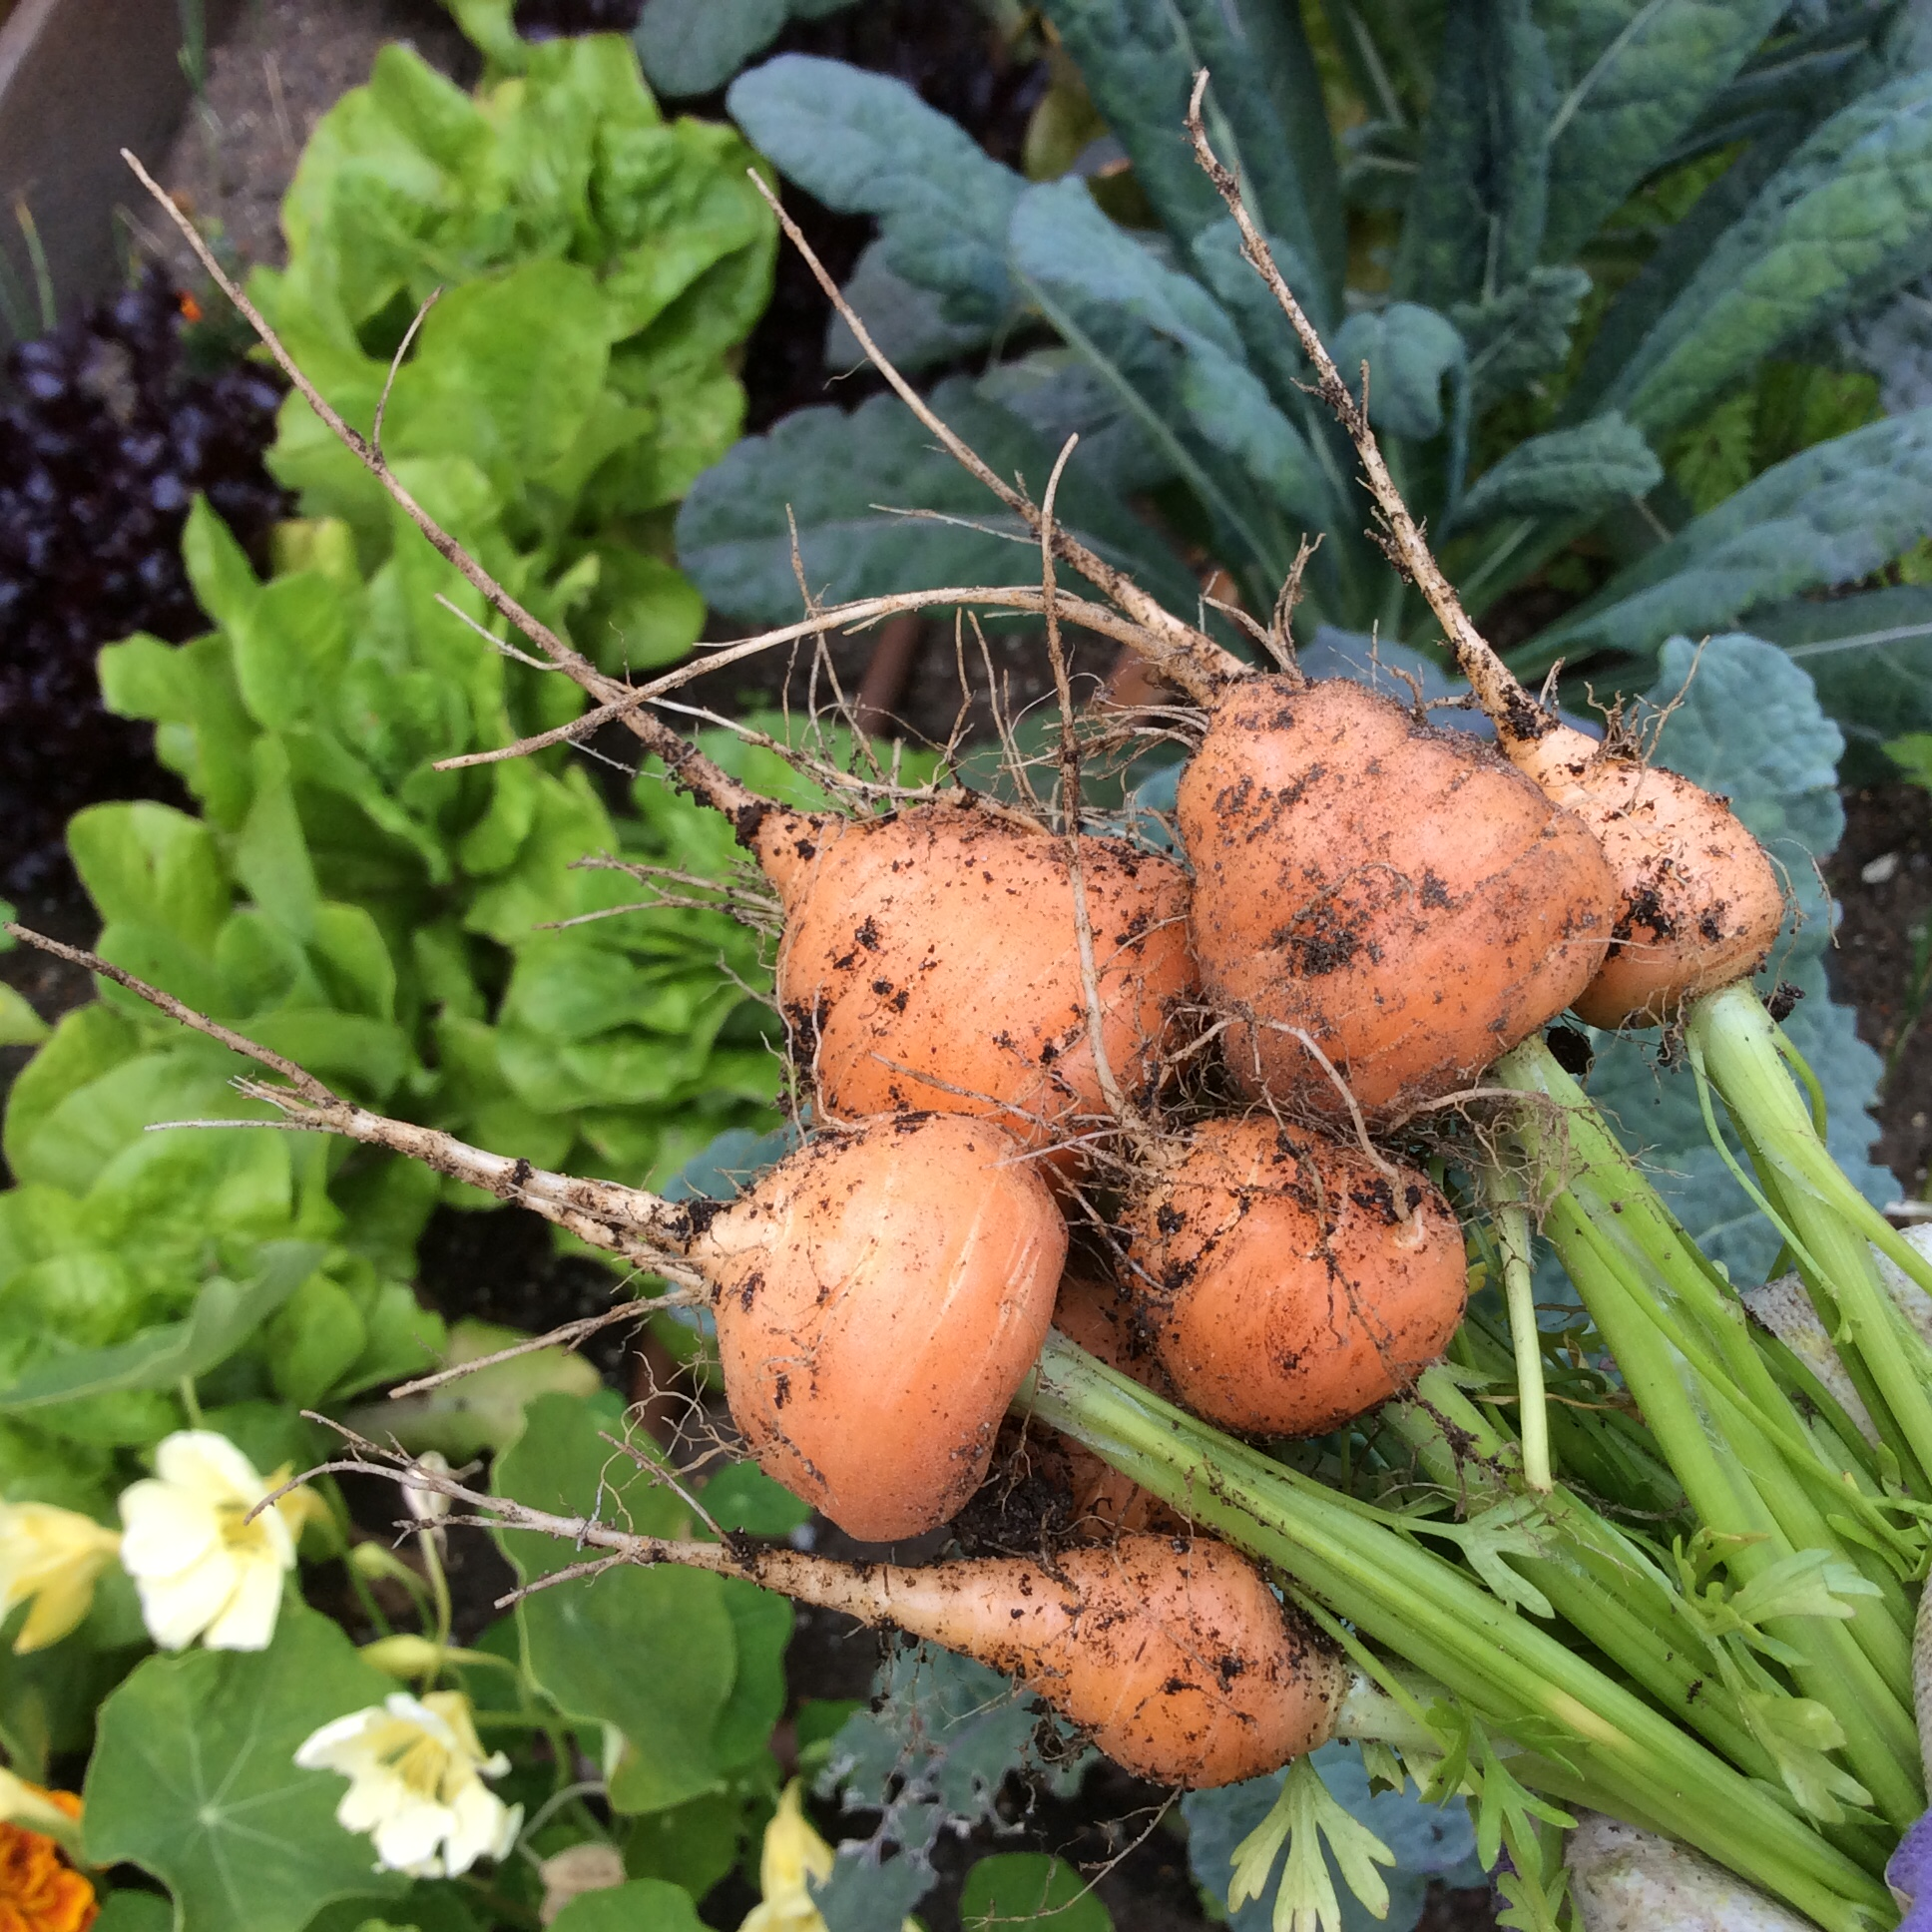 Adorable Parisian carrots that grow very short and round